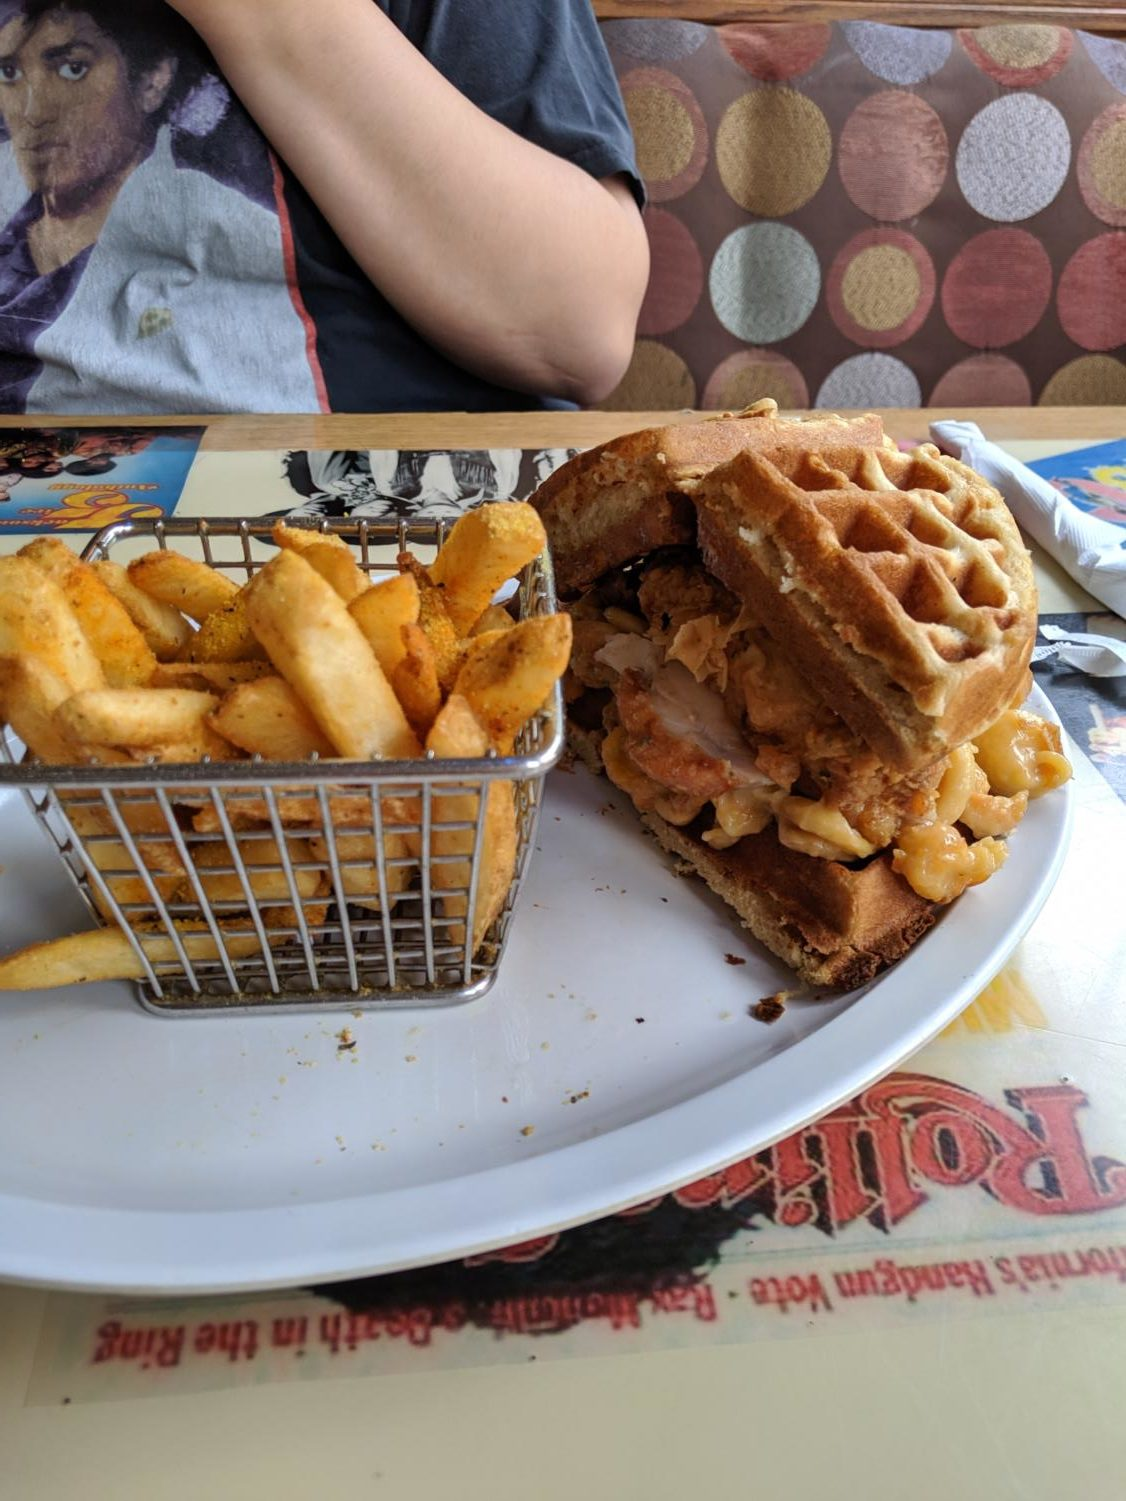 My final stop on my conquest for amazing chicken and waffles was at Cozzy Corner, located on 111 N. Walnut St., Appleton.